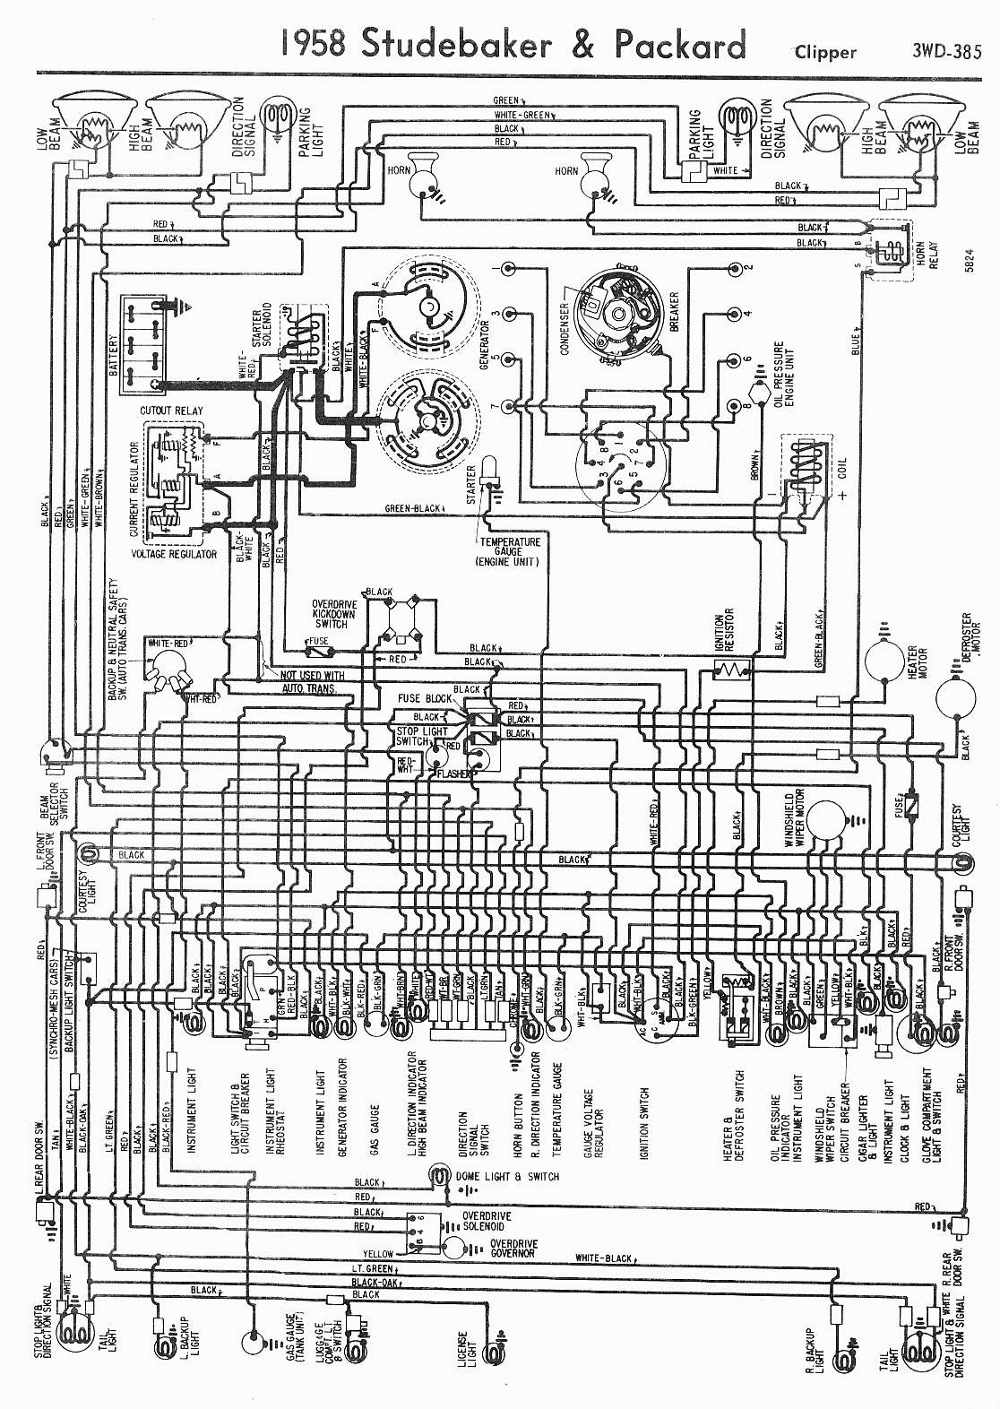 1950 Desoto Wiring Diagrams For Electrical 1958 Imperial Diagram 1935 Ford Coupe Sale Original Survivor Classic 1944